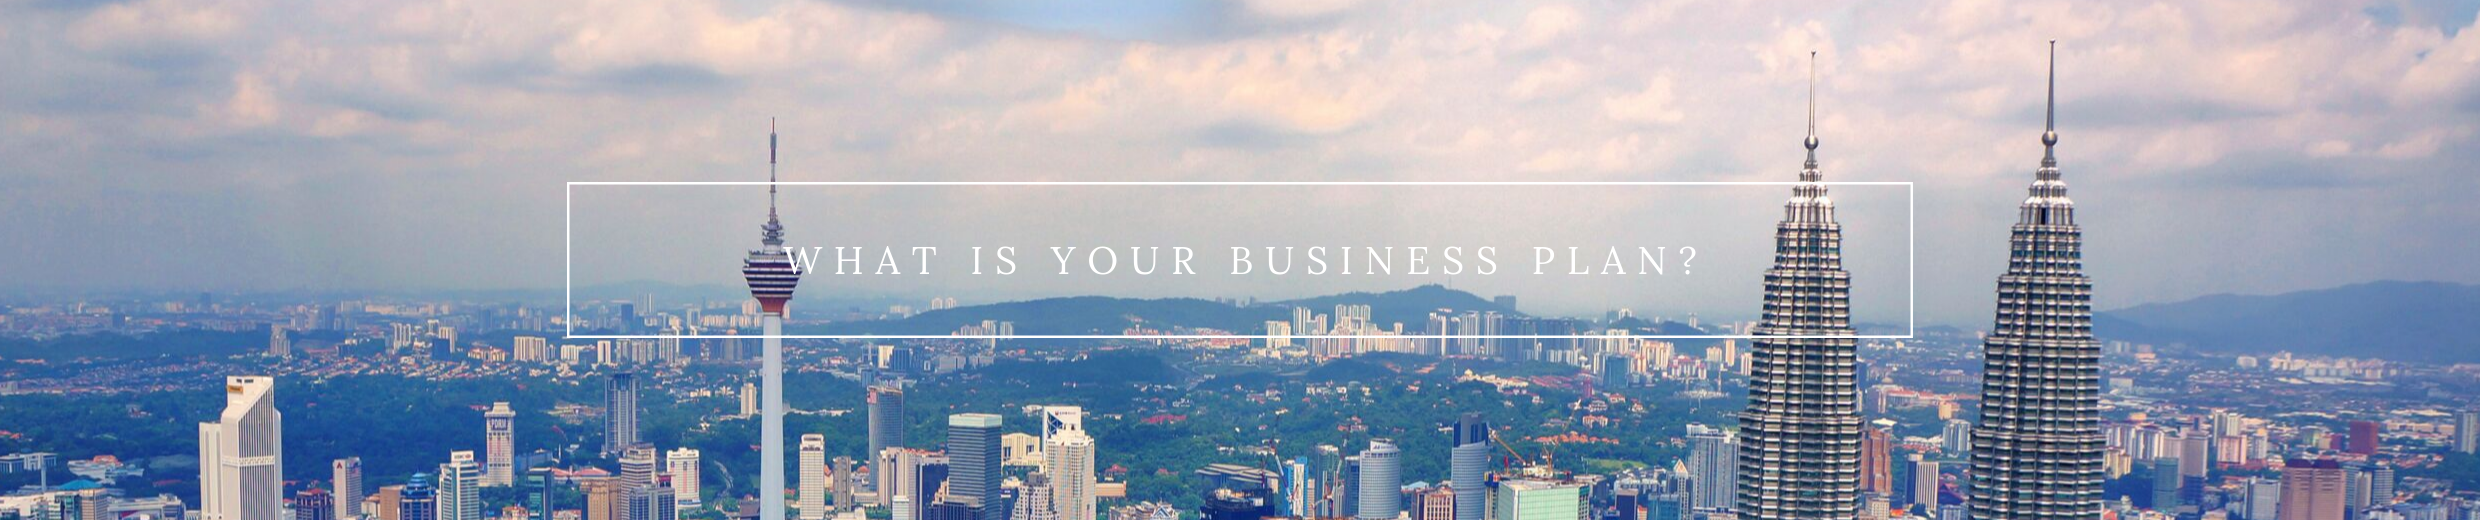 what is your business plan banner